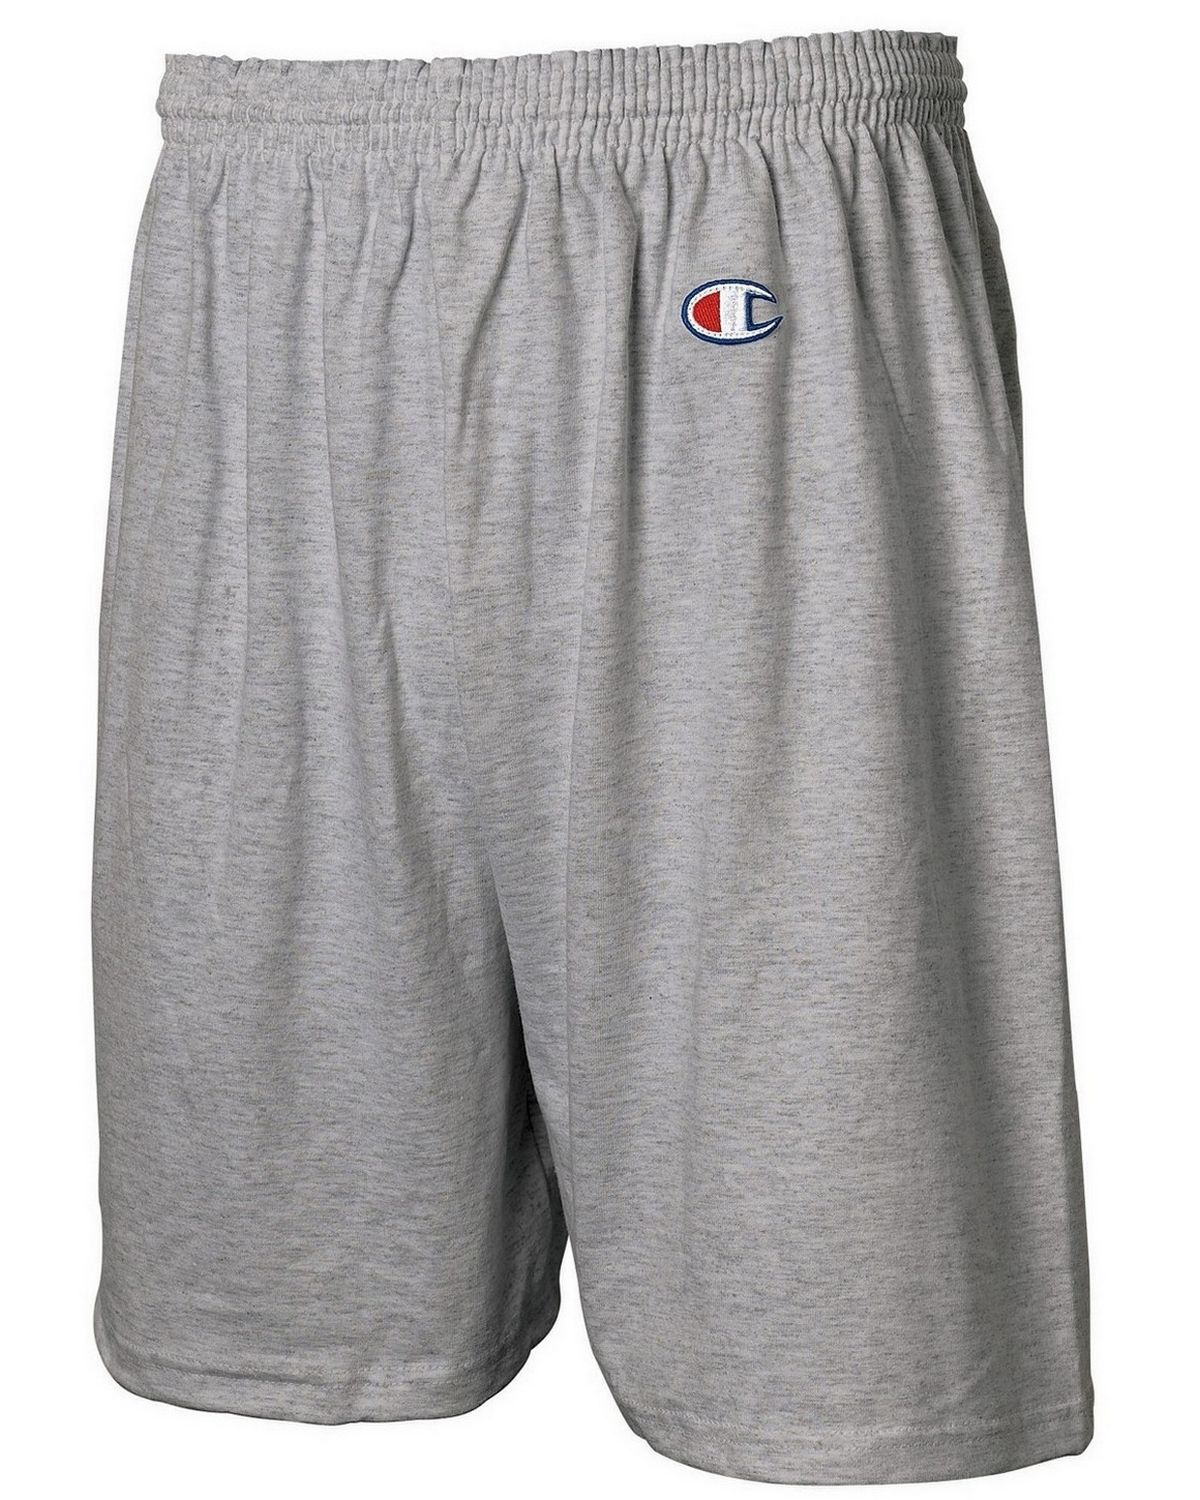 Champion 8187 Ringspun Gym Shorts - Oxford Grey - S 8187